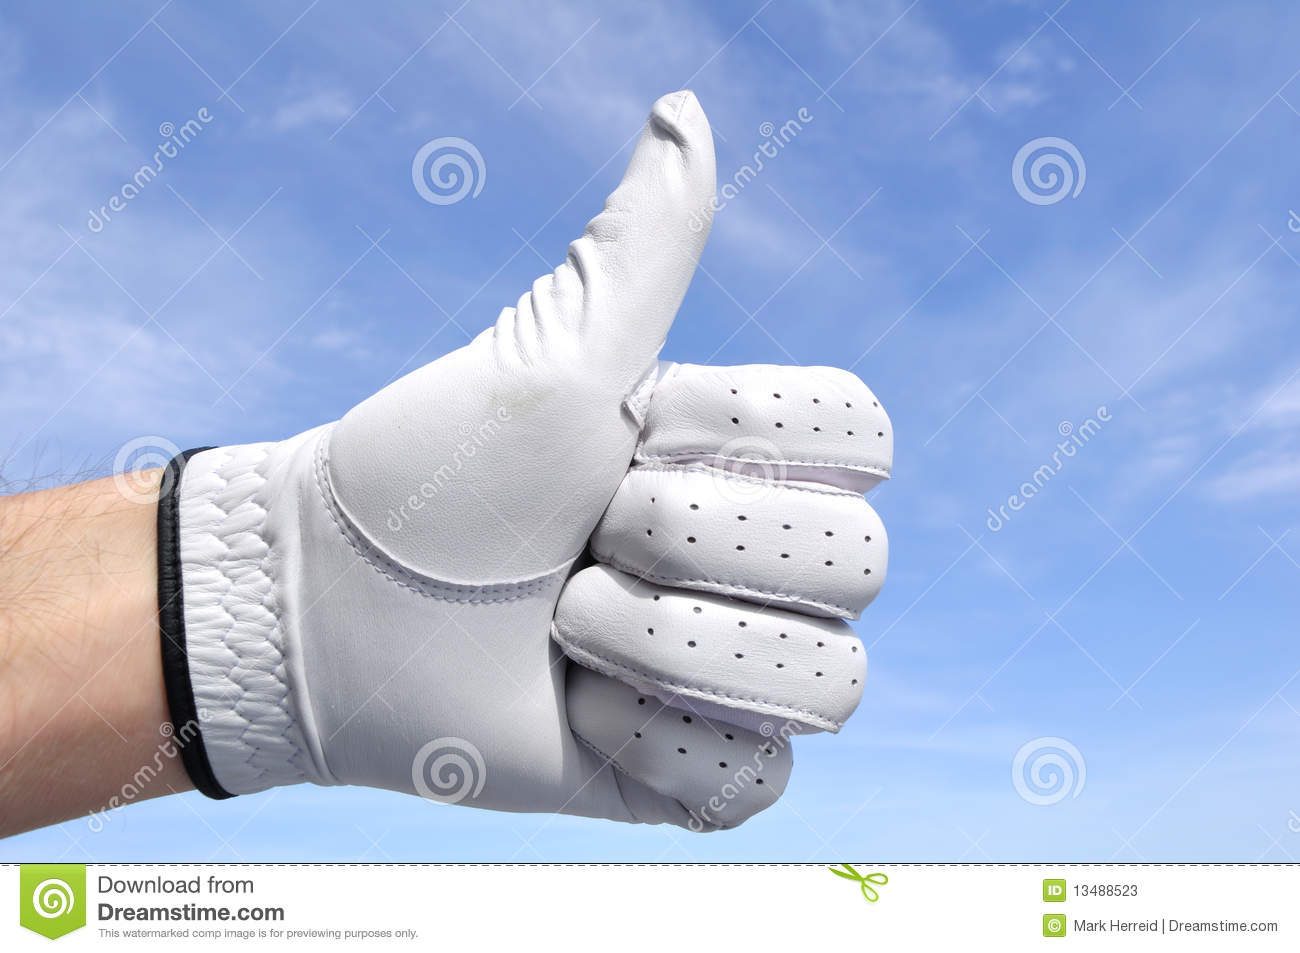 Golfer Giving Thumbs Up Sign Stock Photos - Image: 13488523